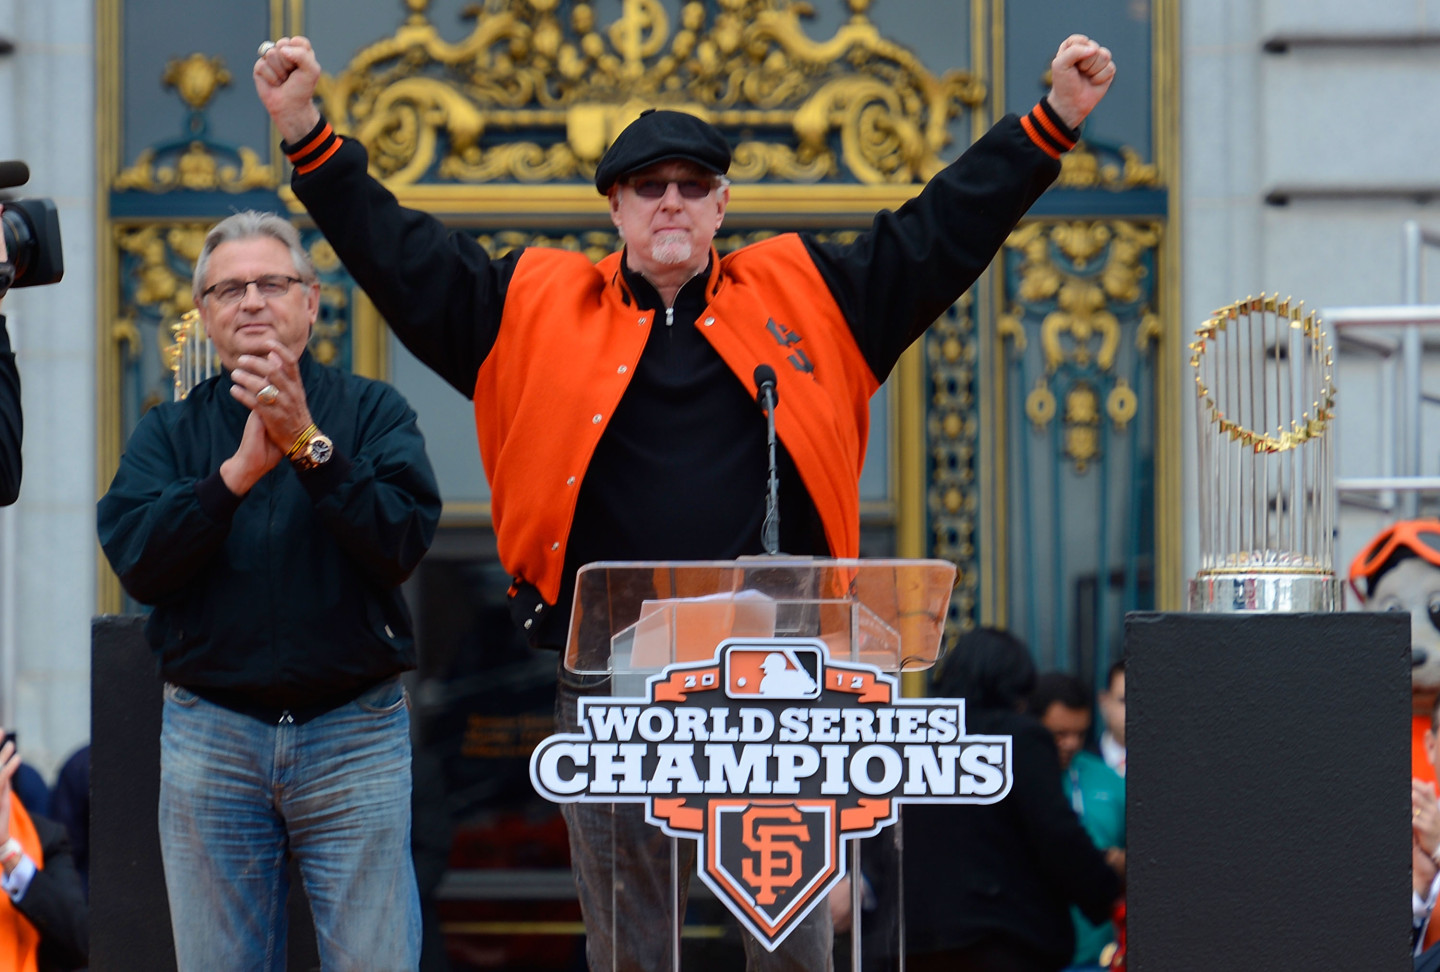 Giants broadcasters Duane Kuiper, left, and Mike Krukow during 2012 World Series victory celebration at San Francisco City Hall. (Thearon W. Henderson/Getty Images)